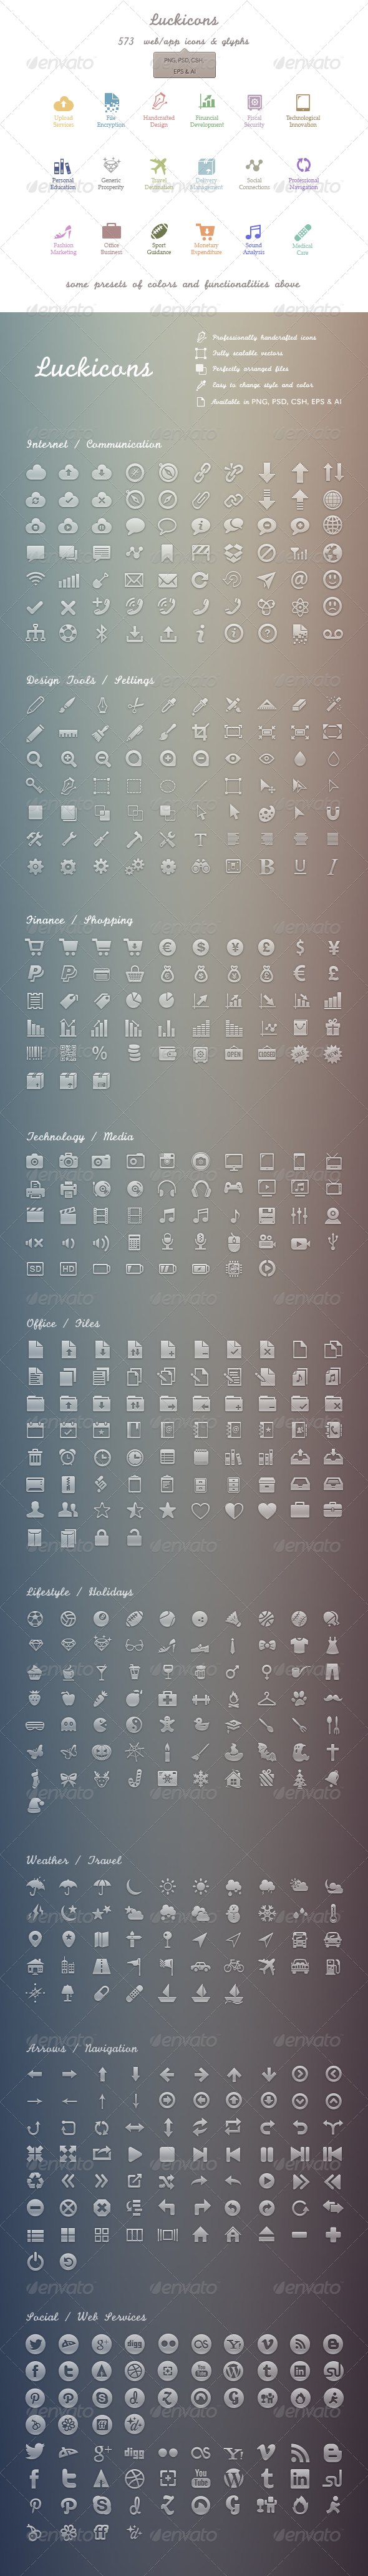 GraphicRiver Luckicons 579 handgrafted vectors icons PSD.. 3355500